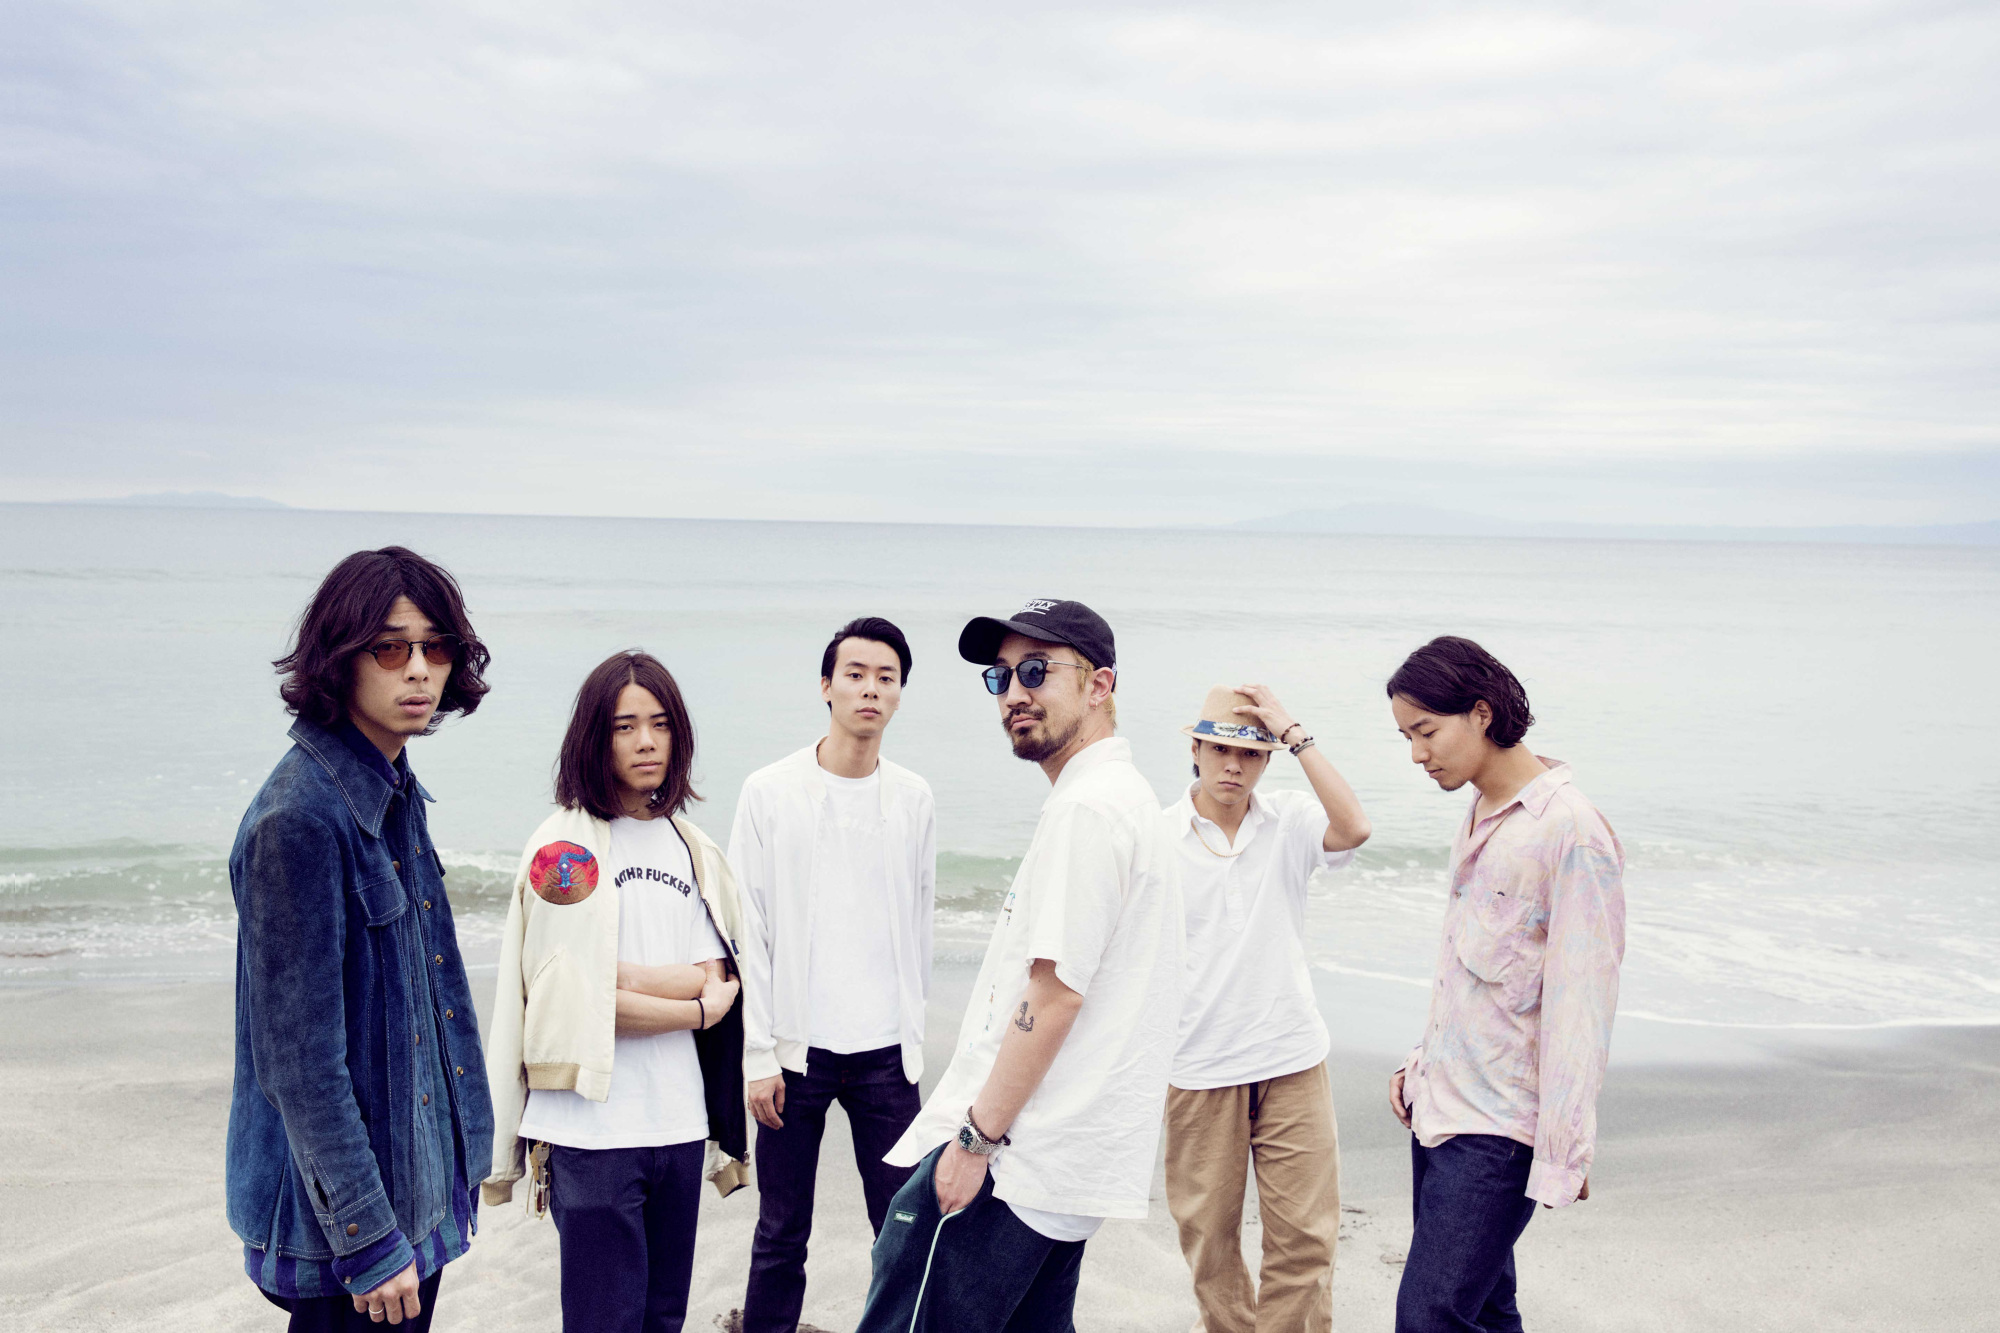 The kids are alright: Suchmos includes (from left) drummer Kento 'OK' Ohara, DJ Kaiki 'Kcee' Ohara, vocalist Yosuke 'Yonce' Kasai, bassist Hayata 'Hsu' Kosugi, guitarist Taiki 'Taiking' Totsuka and keyboardist Taihei Sakurauchi. The band's style of rock frequently incorporates other genres of music such as hip-hop and jazz.